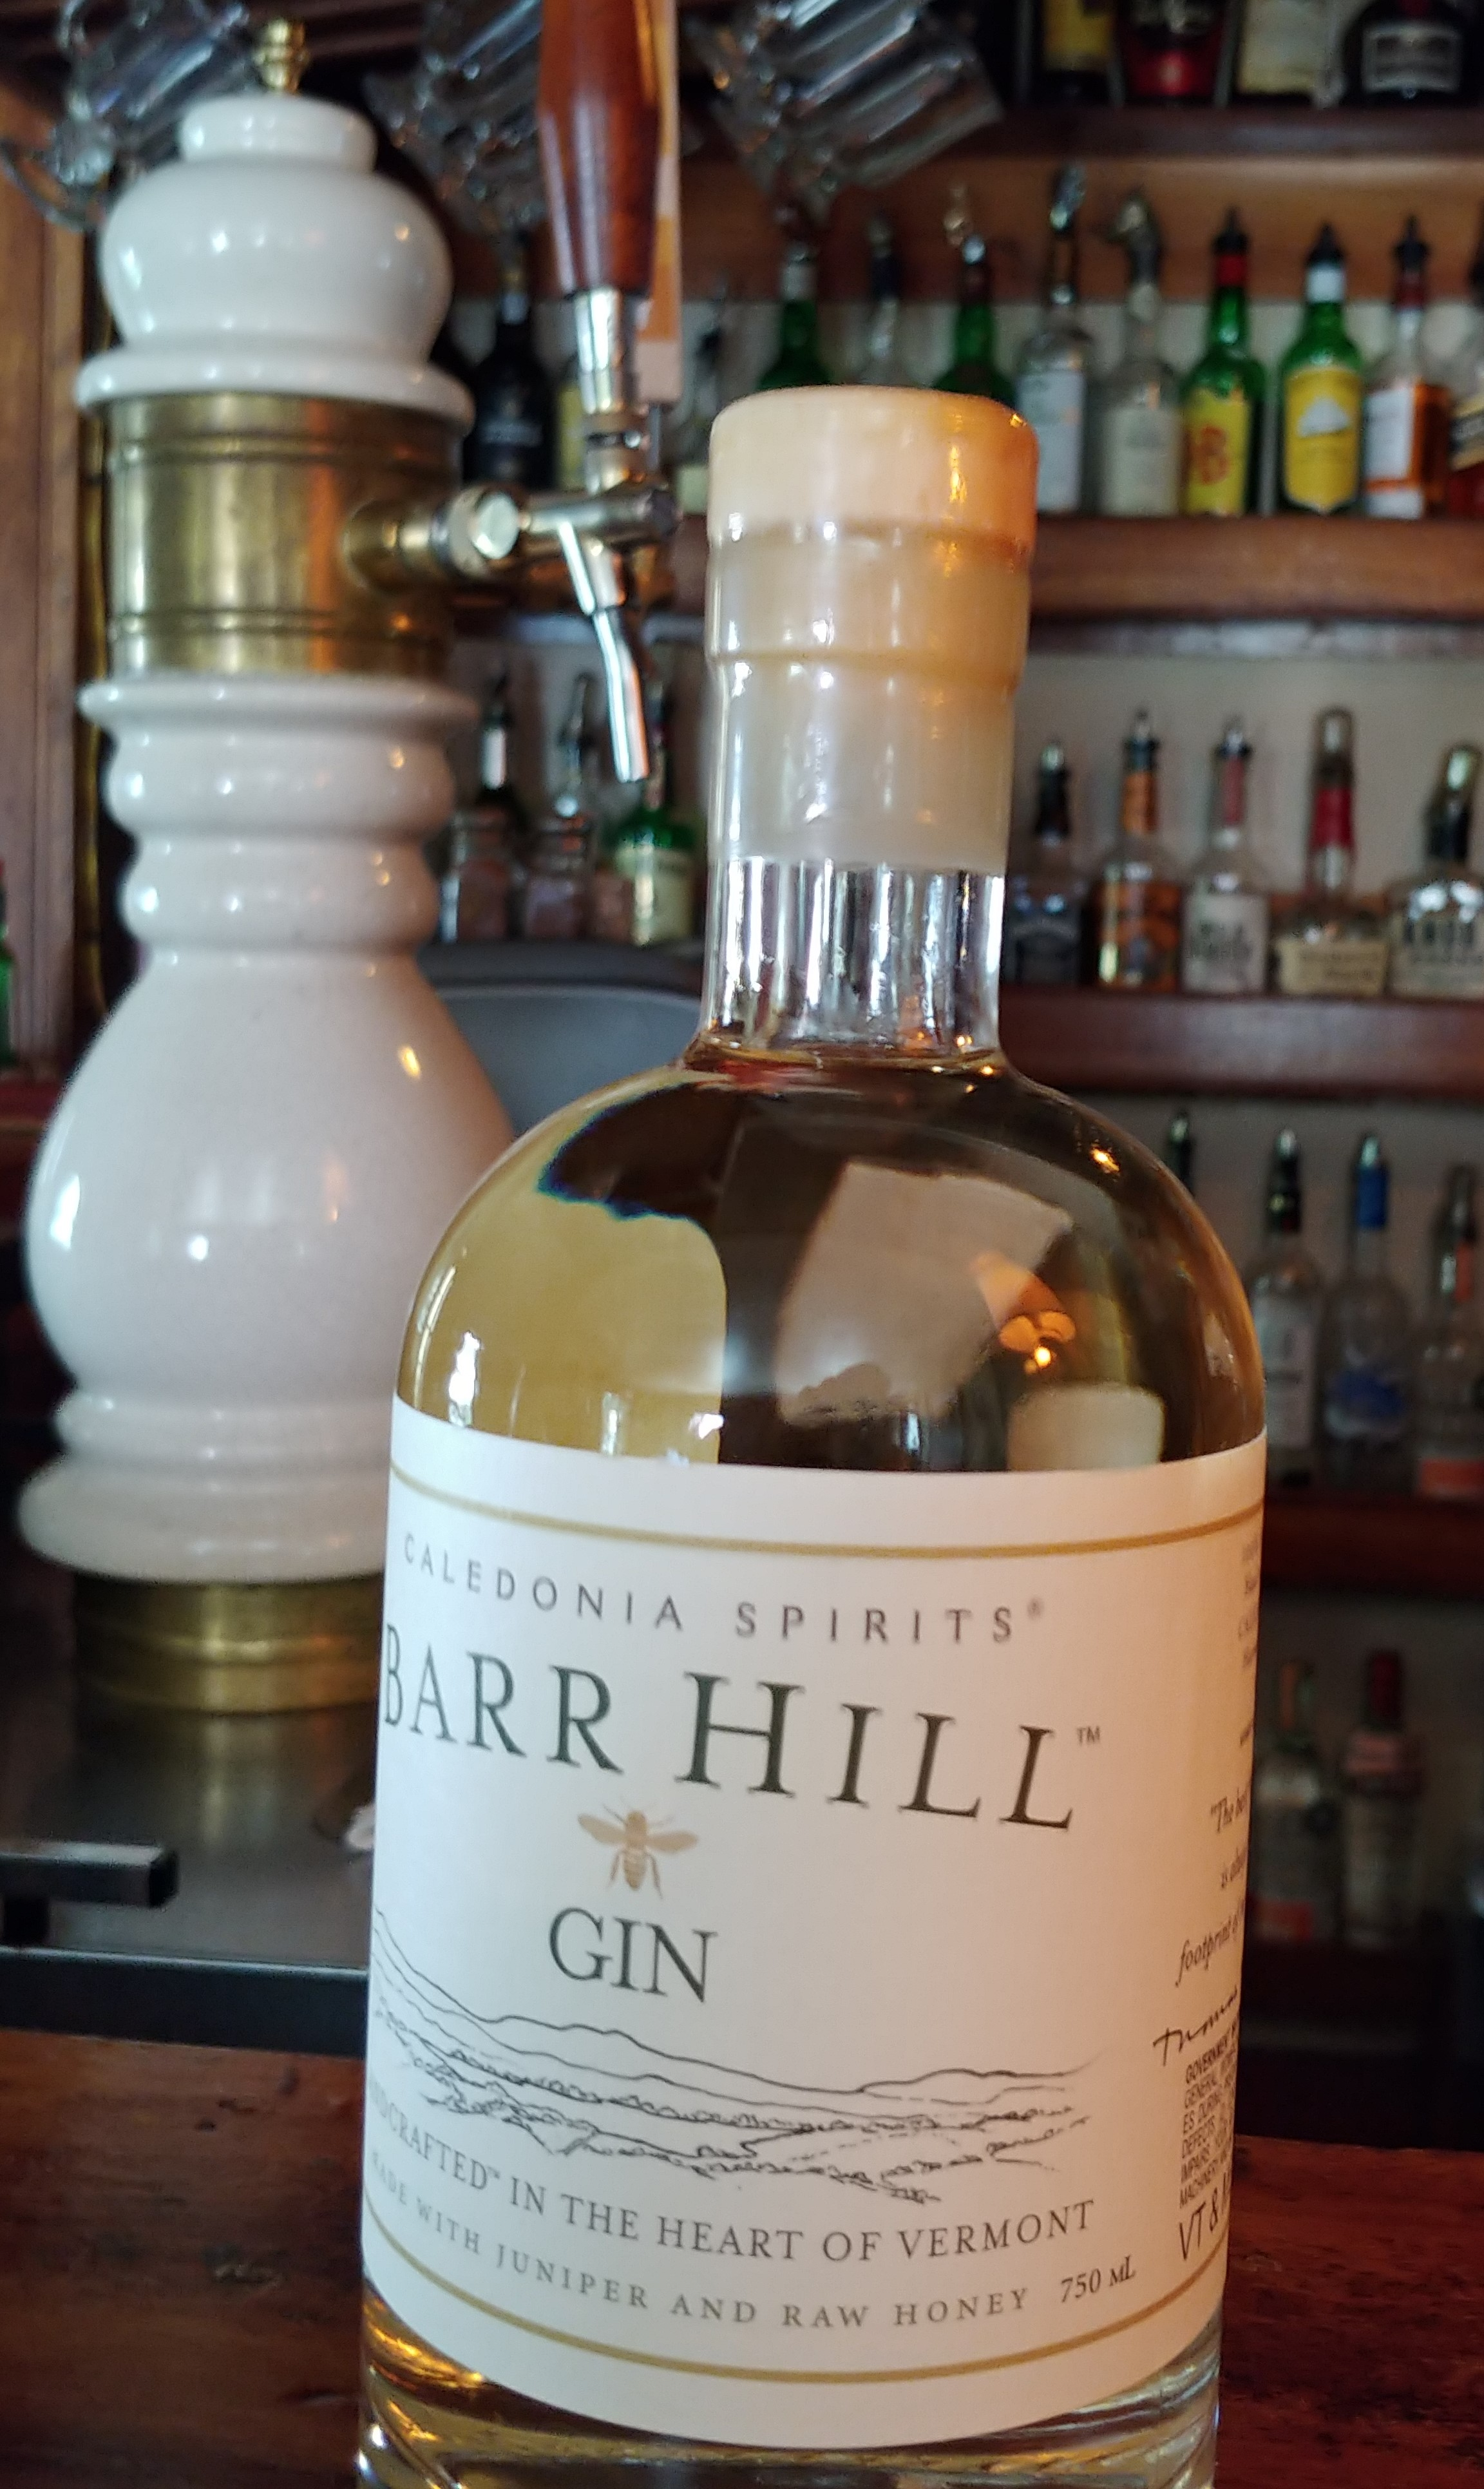 Barr Hill Gin with taps in background Aug 2018.jpg